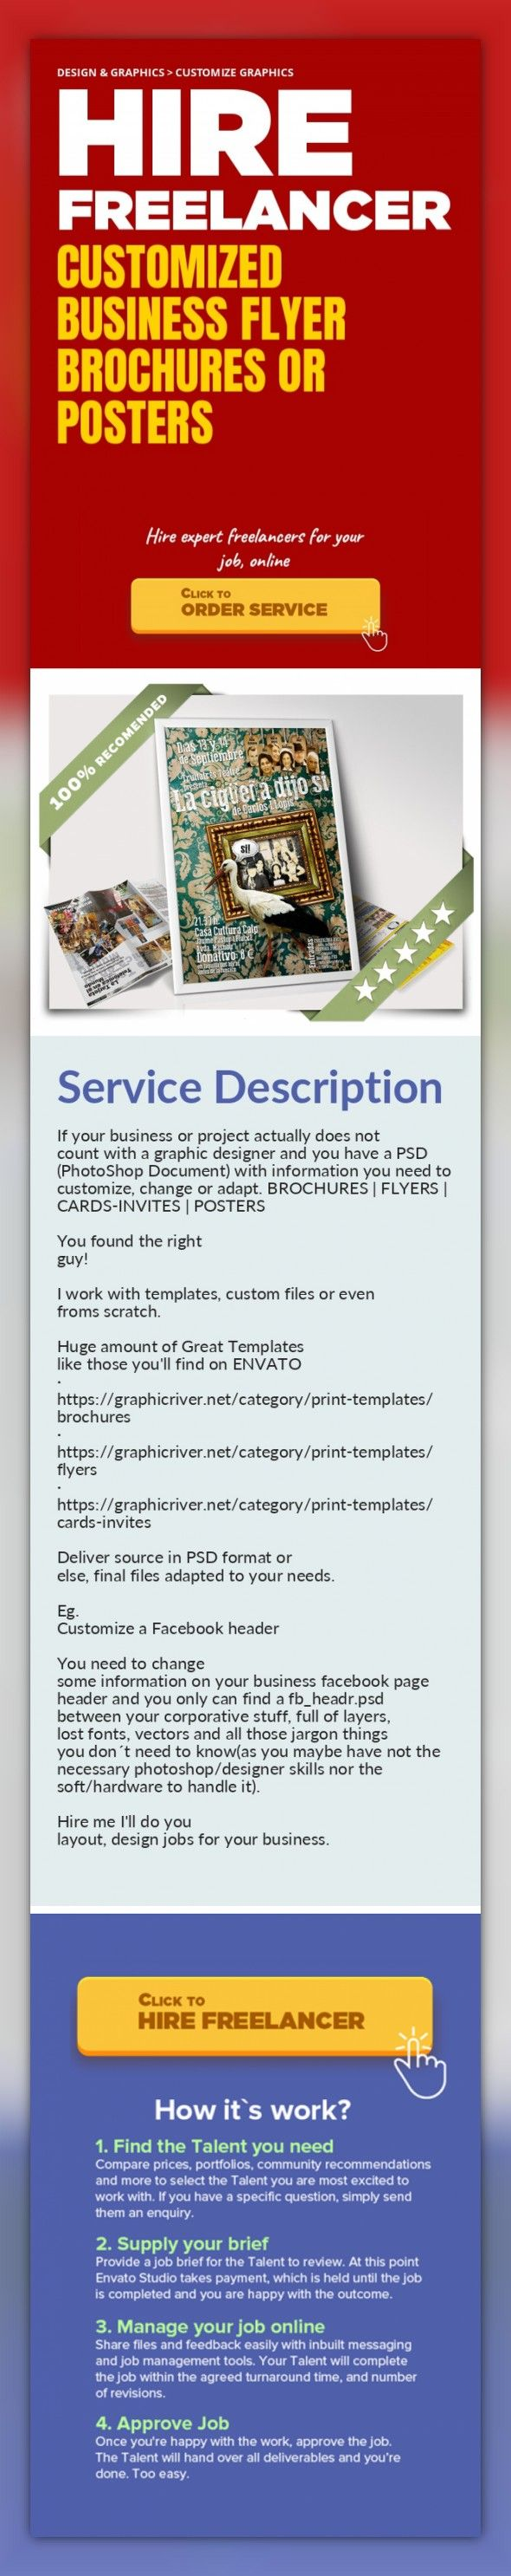 Customized Business Flyer Brochures or Posters Design & Graphics, Customize Graphics   If your business or project actually does not count with a graphic designer and you have a PSD (PhotoShop Document) with information you need to customize, change or adapt. BROCHURES | FLYERS | CARDS-INVITES | POSTERS    You found the right guy!    I work with templates, custom files or even froms scratch.    Hu...